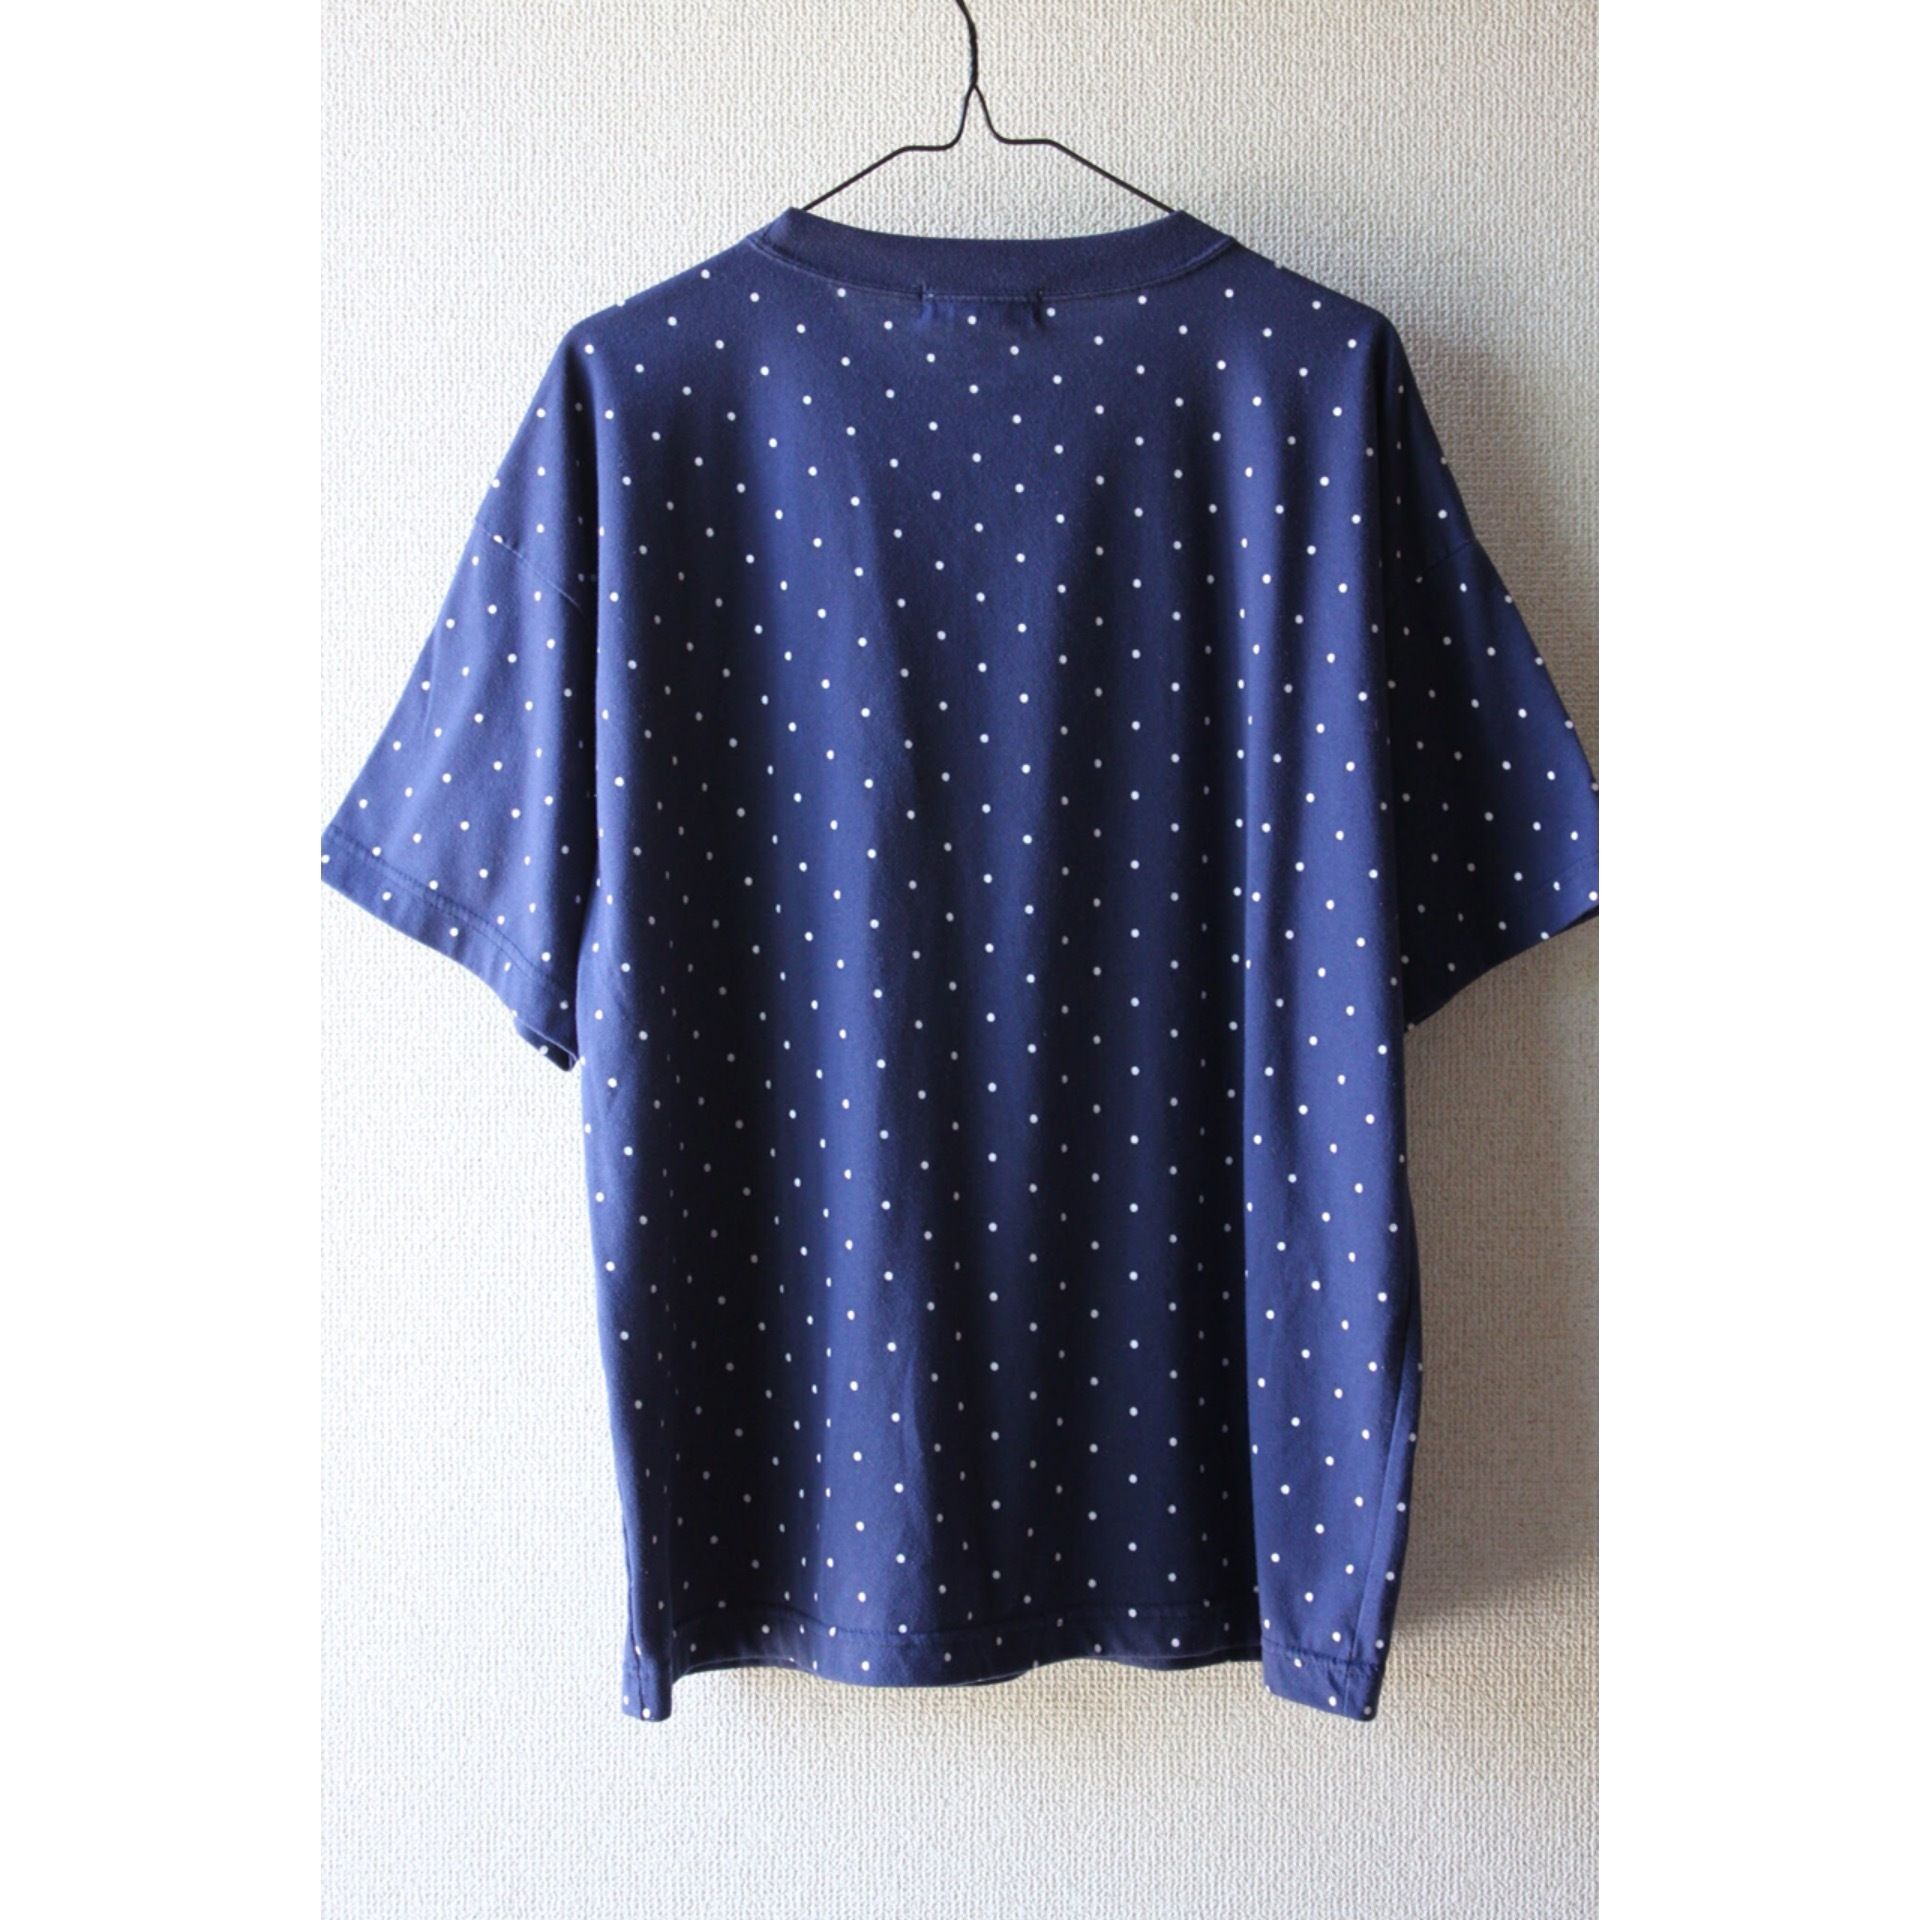 Vintage dot print pocket t shirt